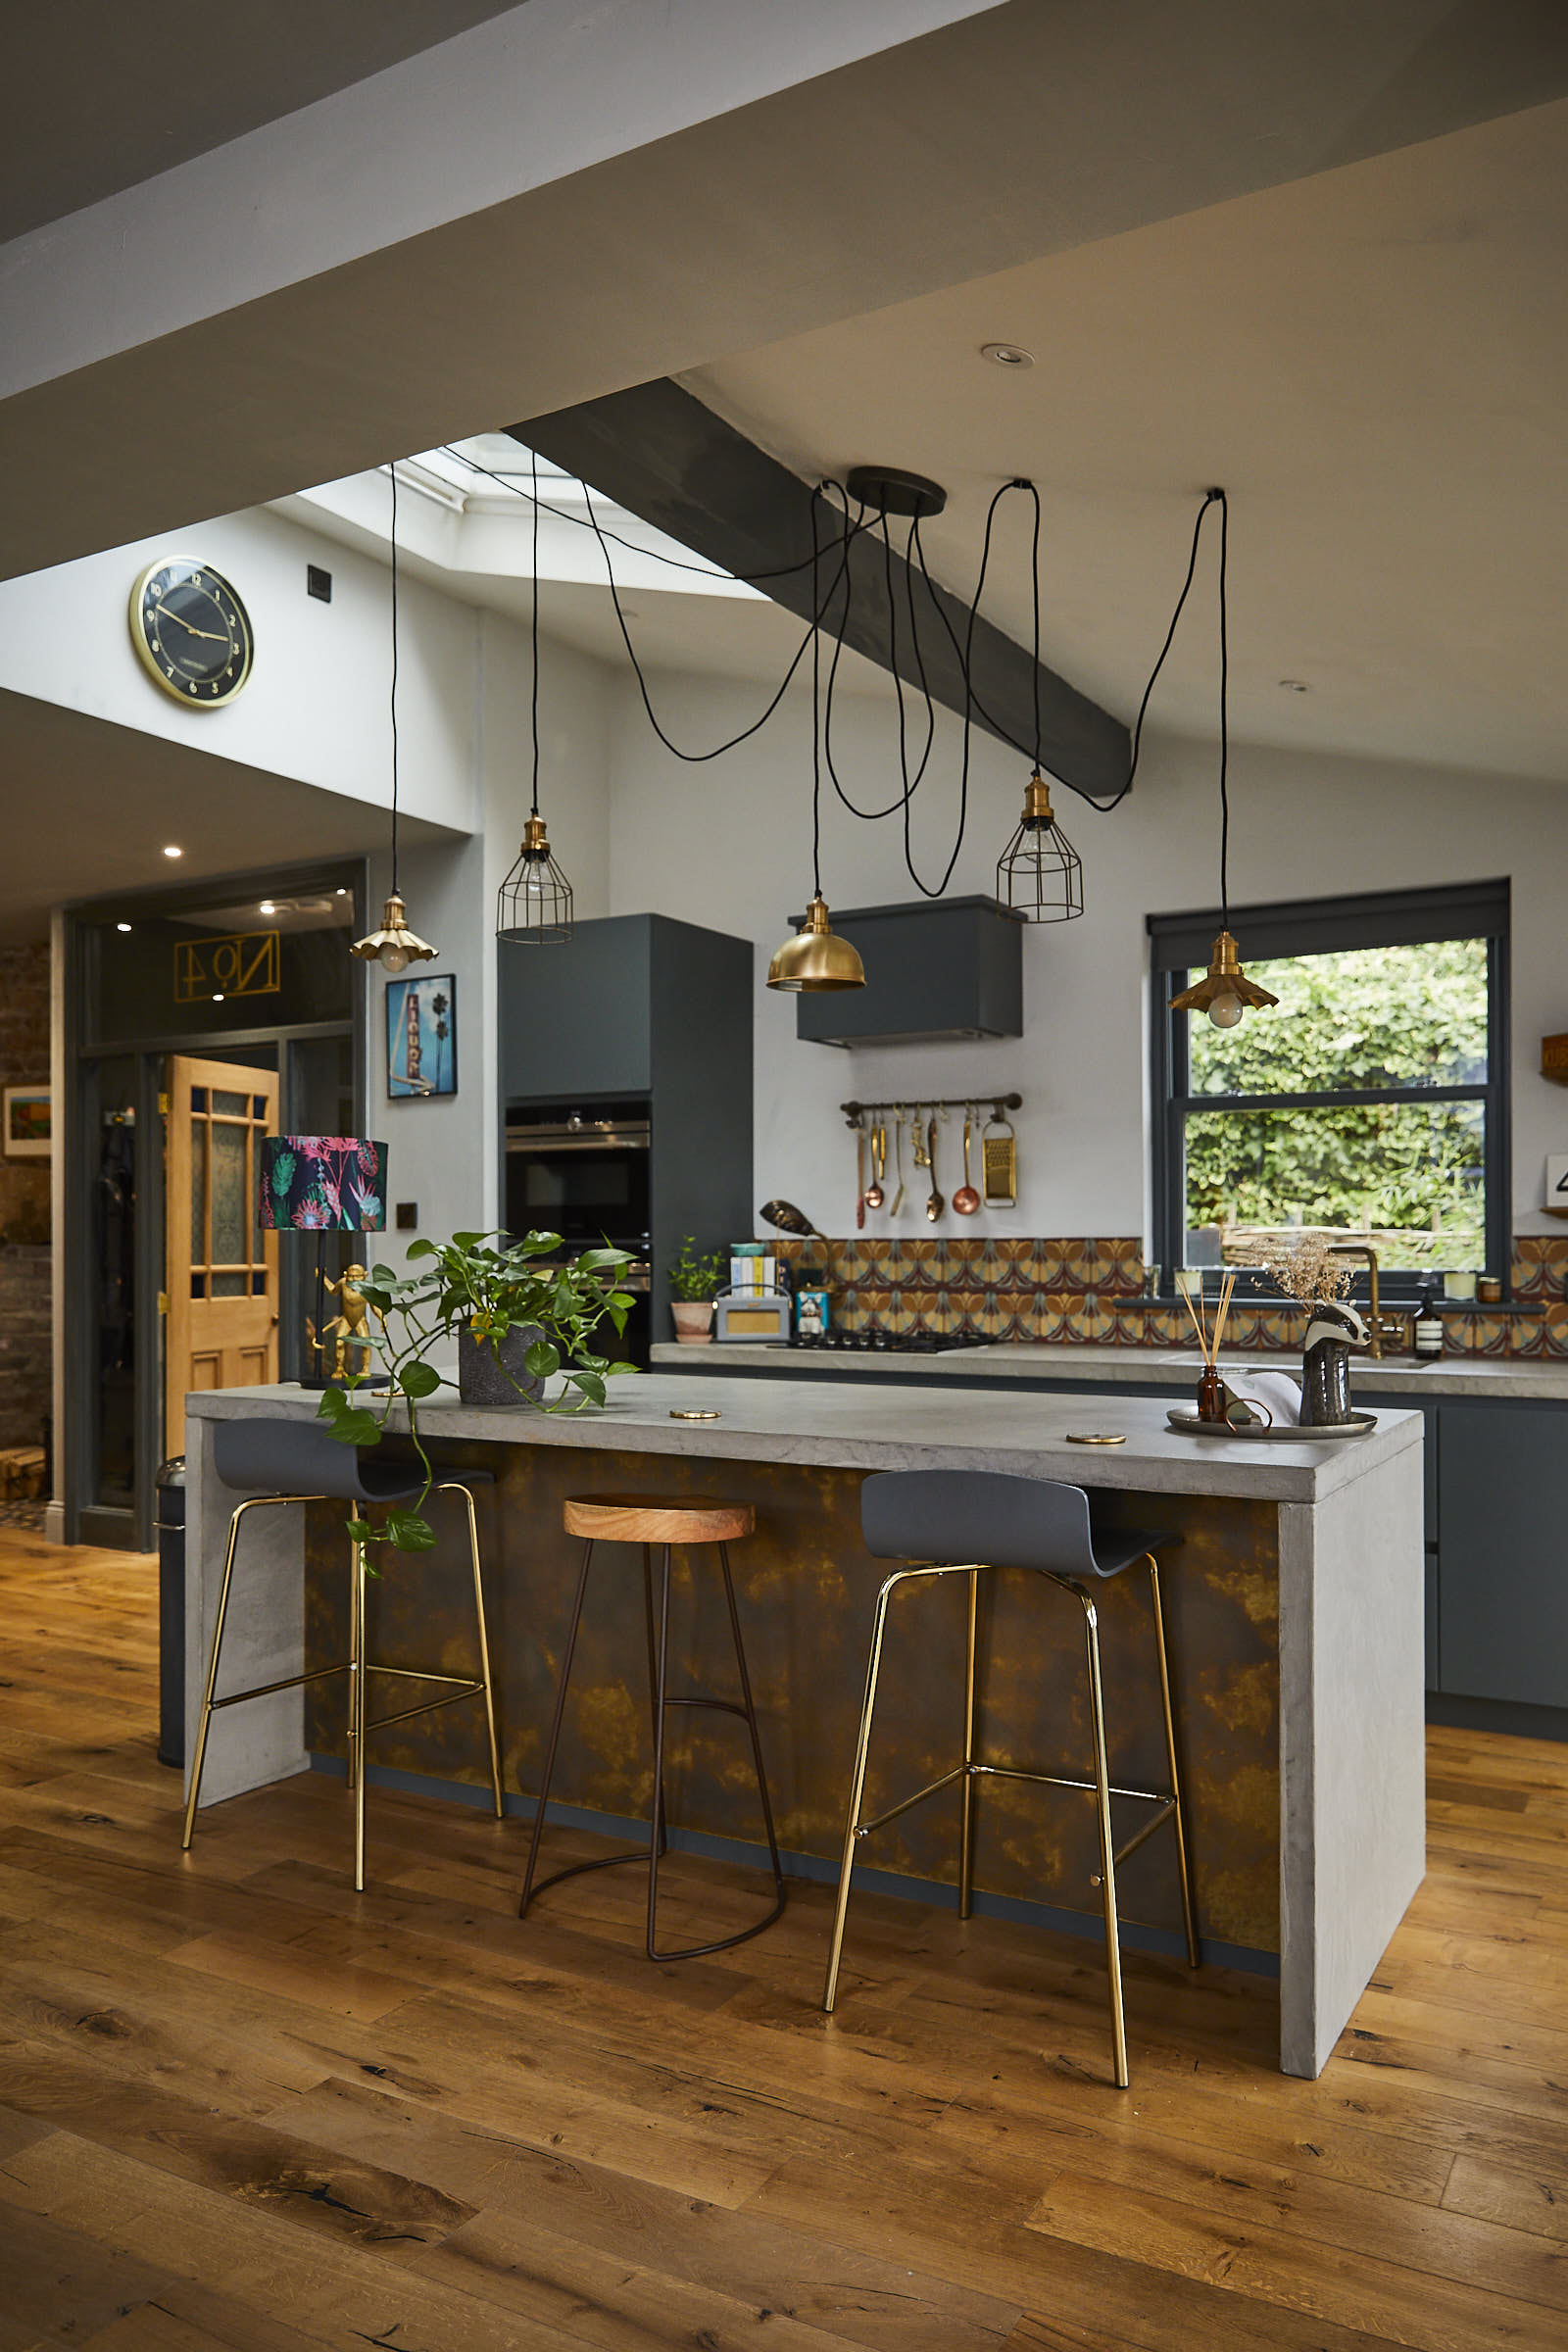 Bar stools sit under kitchen island with concrete waterfall worktop and clean oak flooring